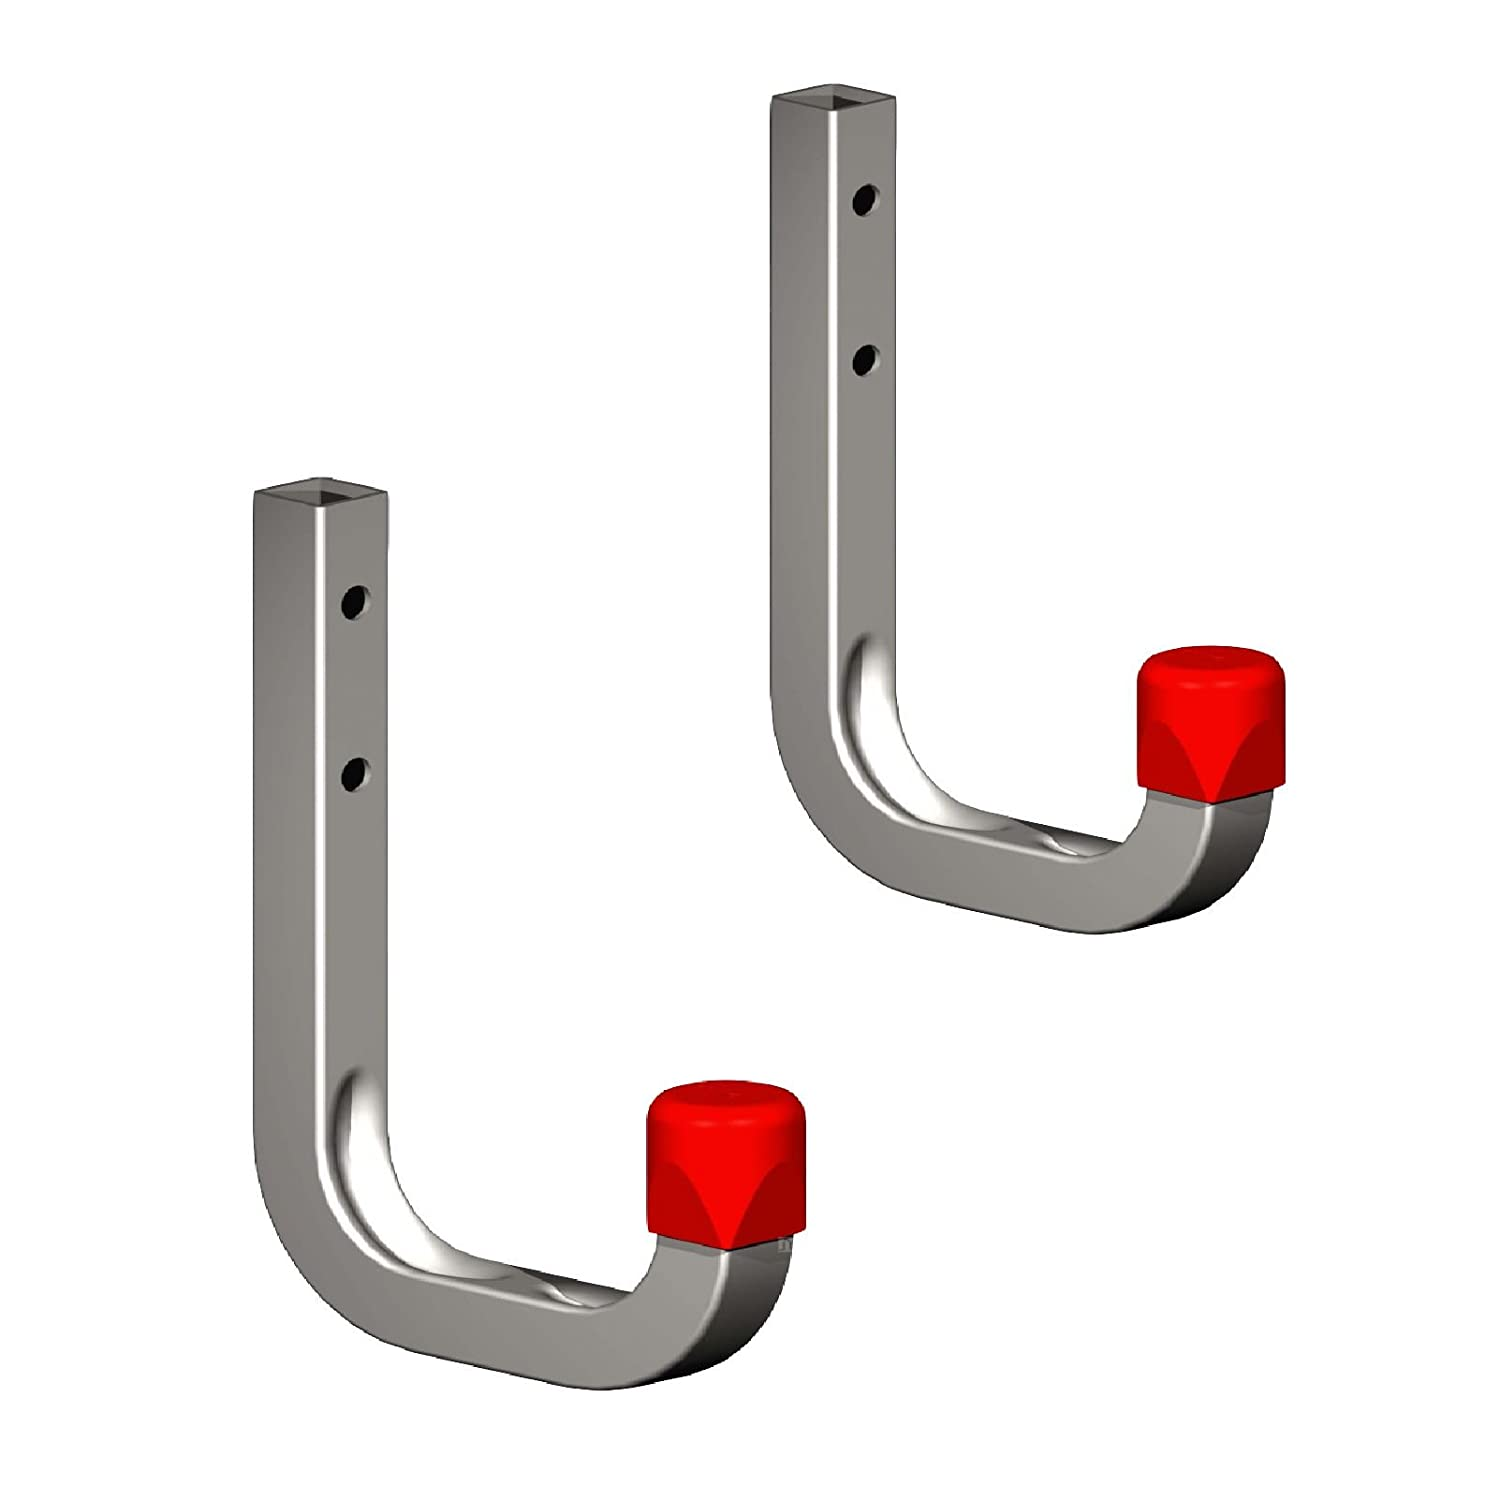 Garages Sheds Ladders /& Tools 2 x 80mm Storage Wall Hooks 45kg Galvanised Steel